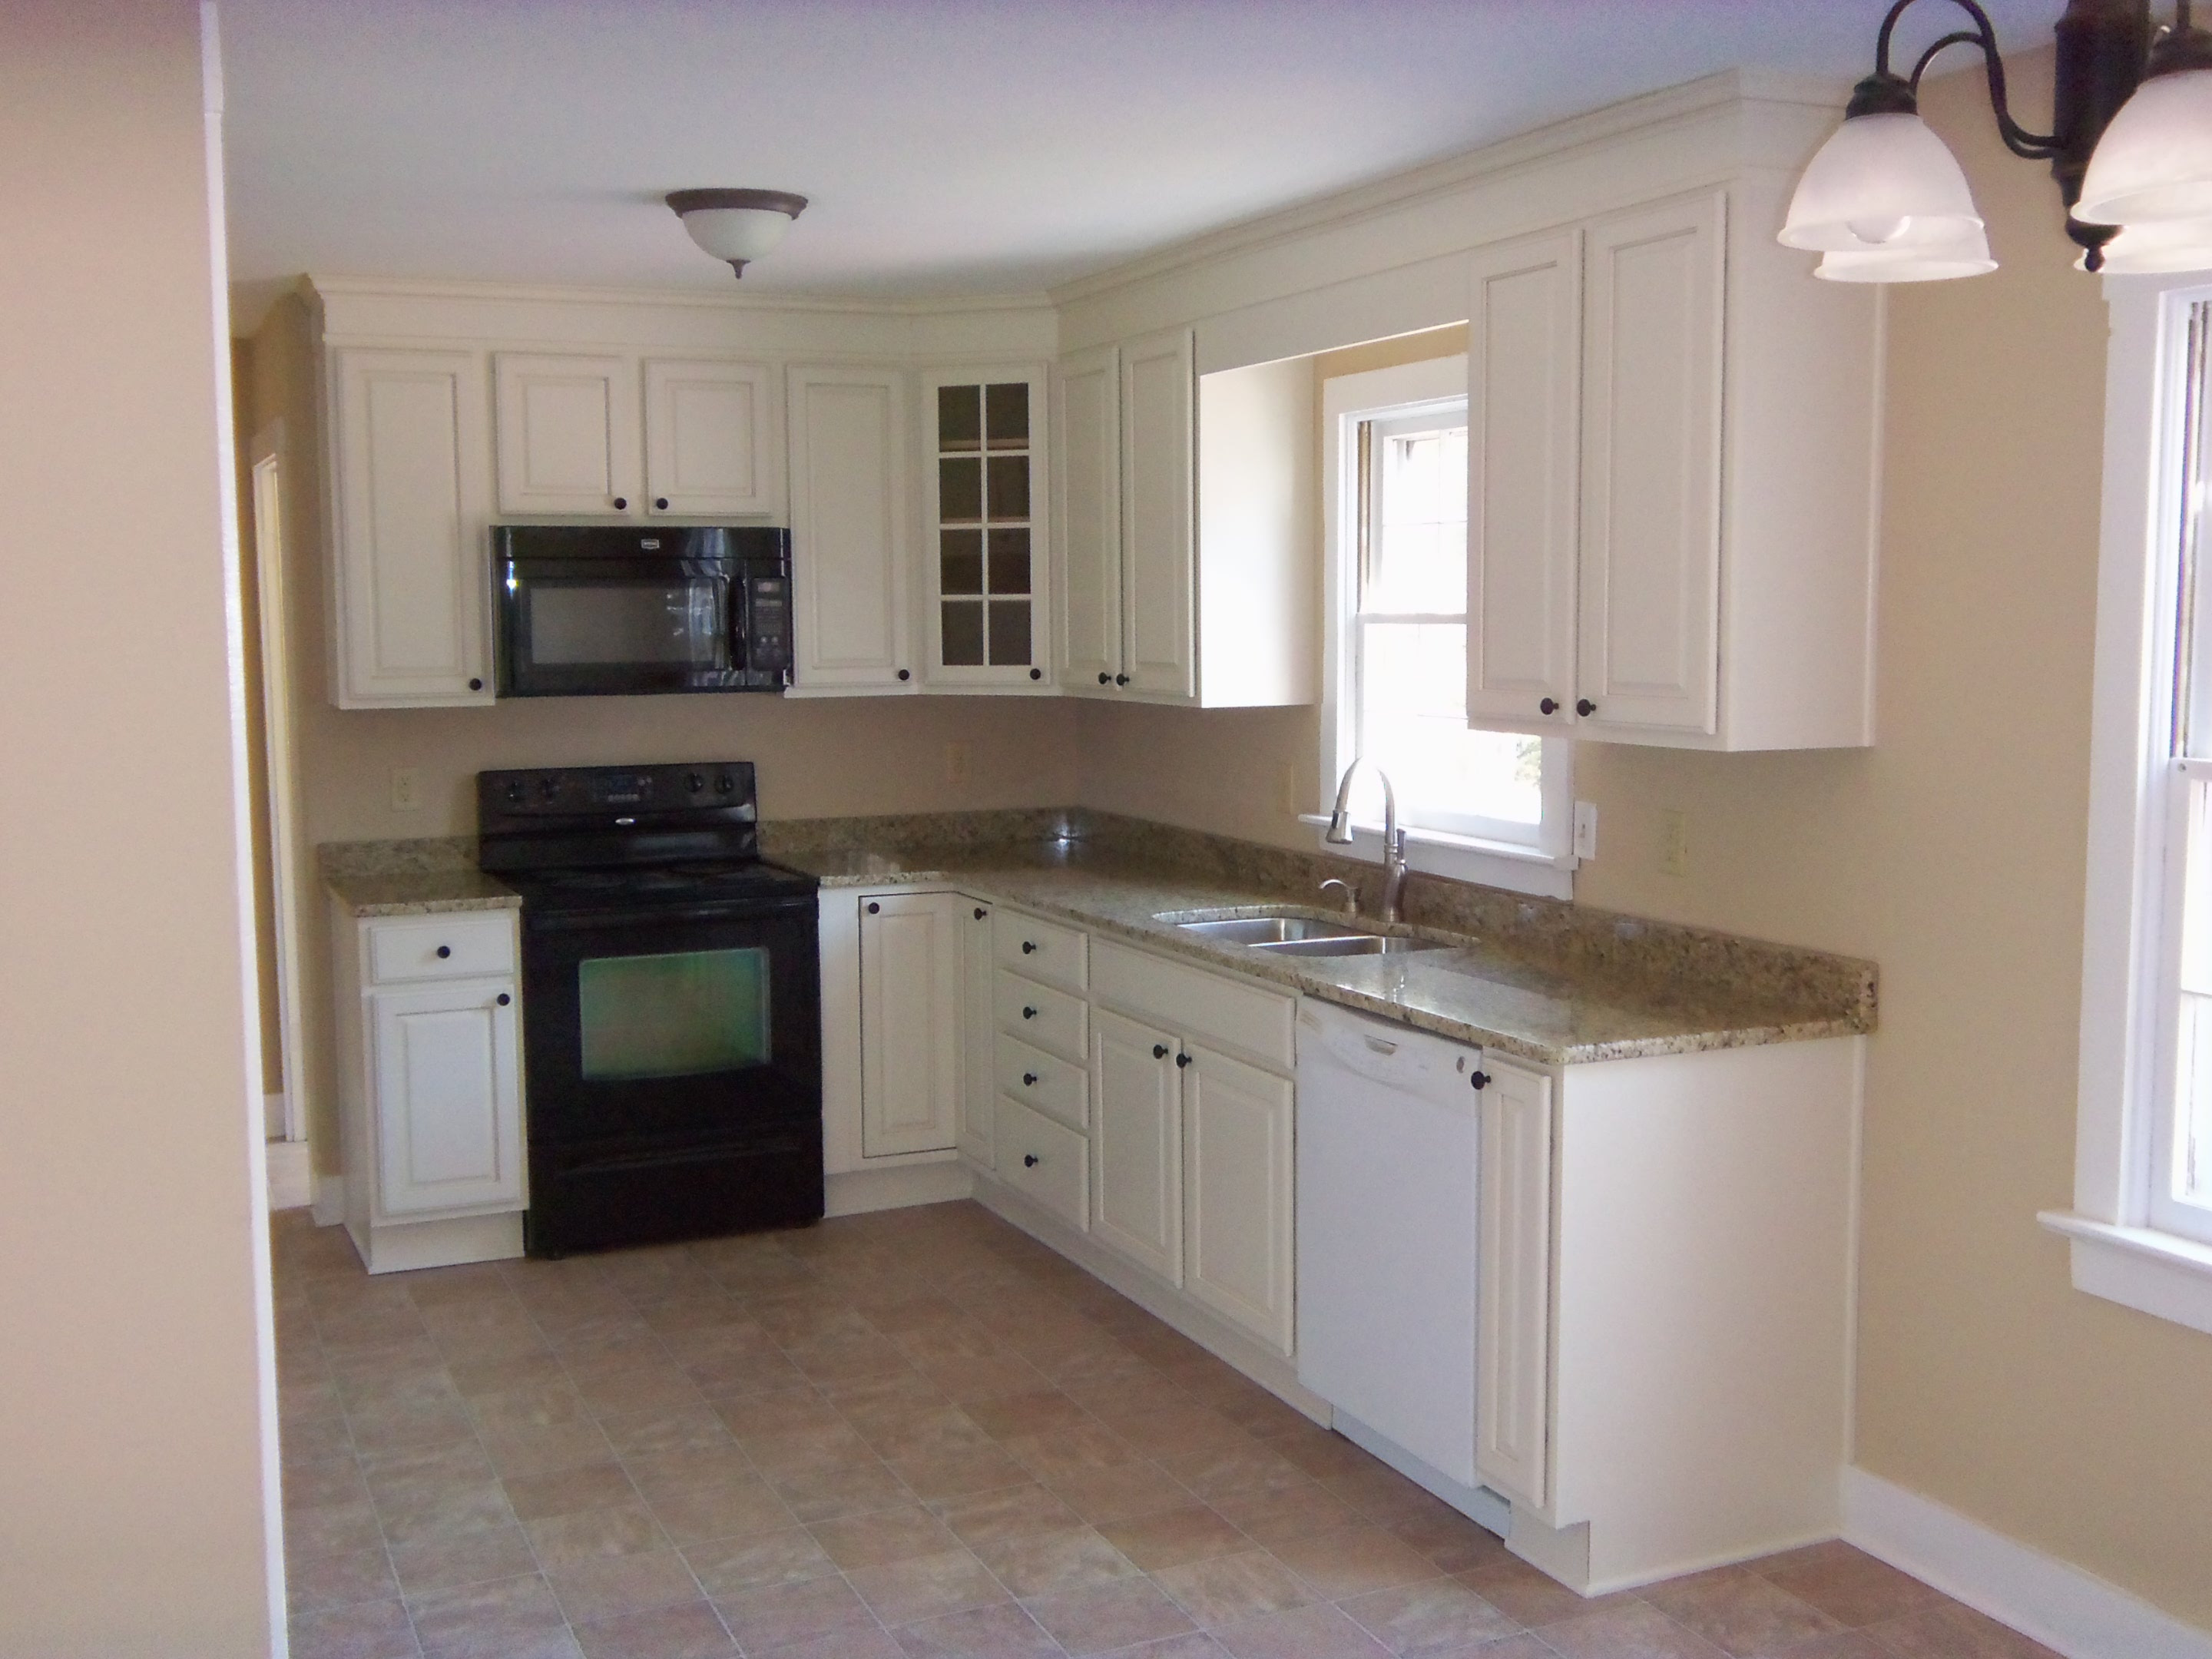 Remodeling A Very Small L Shaped Kitchen Design  My Kitchen Interior  MYKITCHENINTERIOR